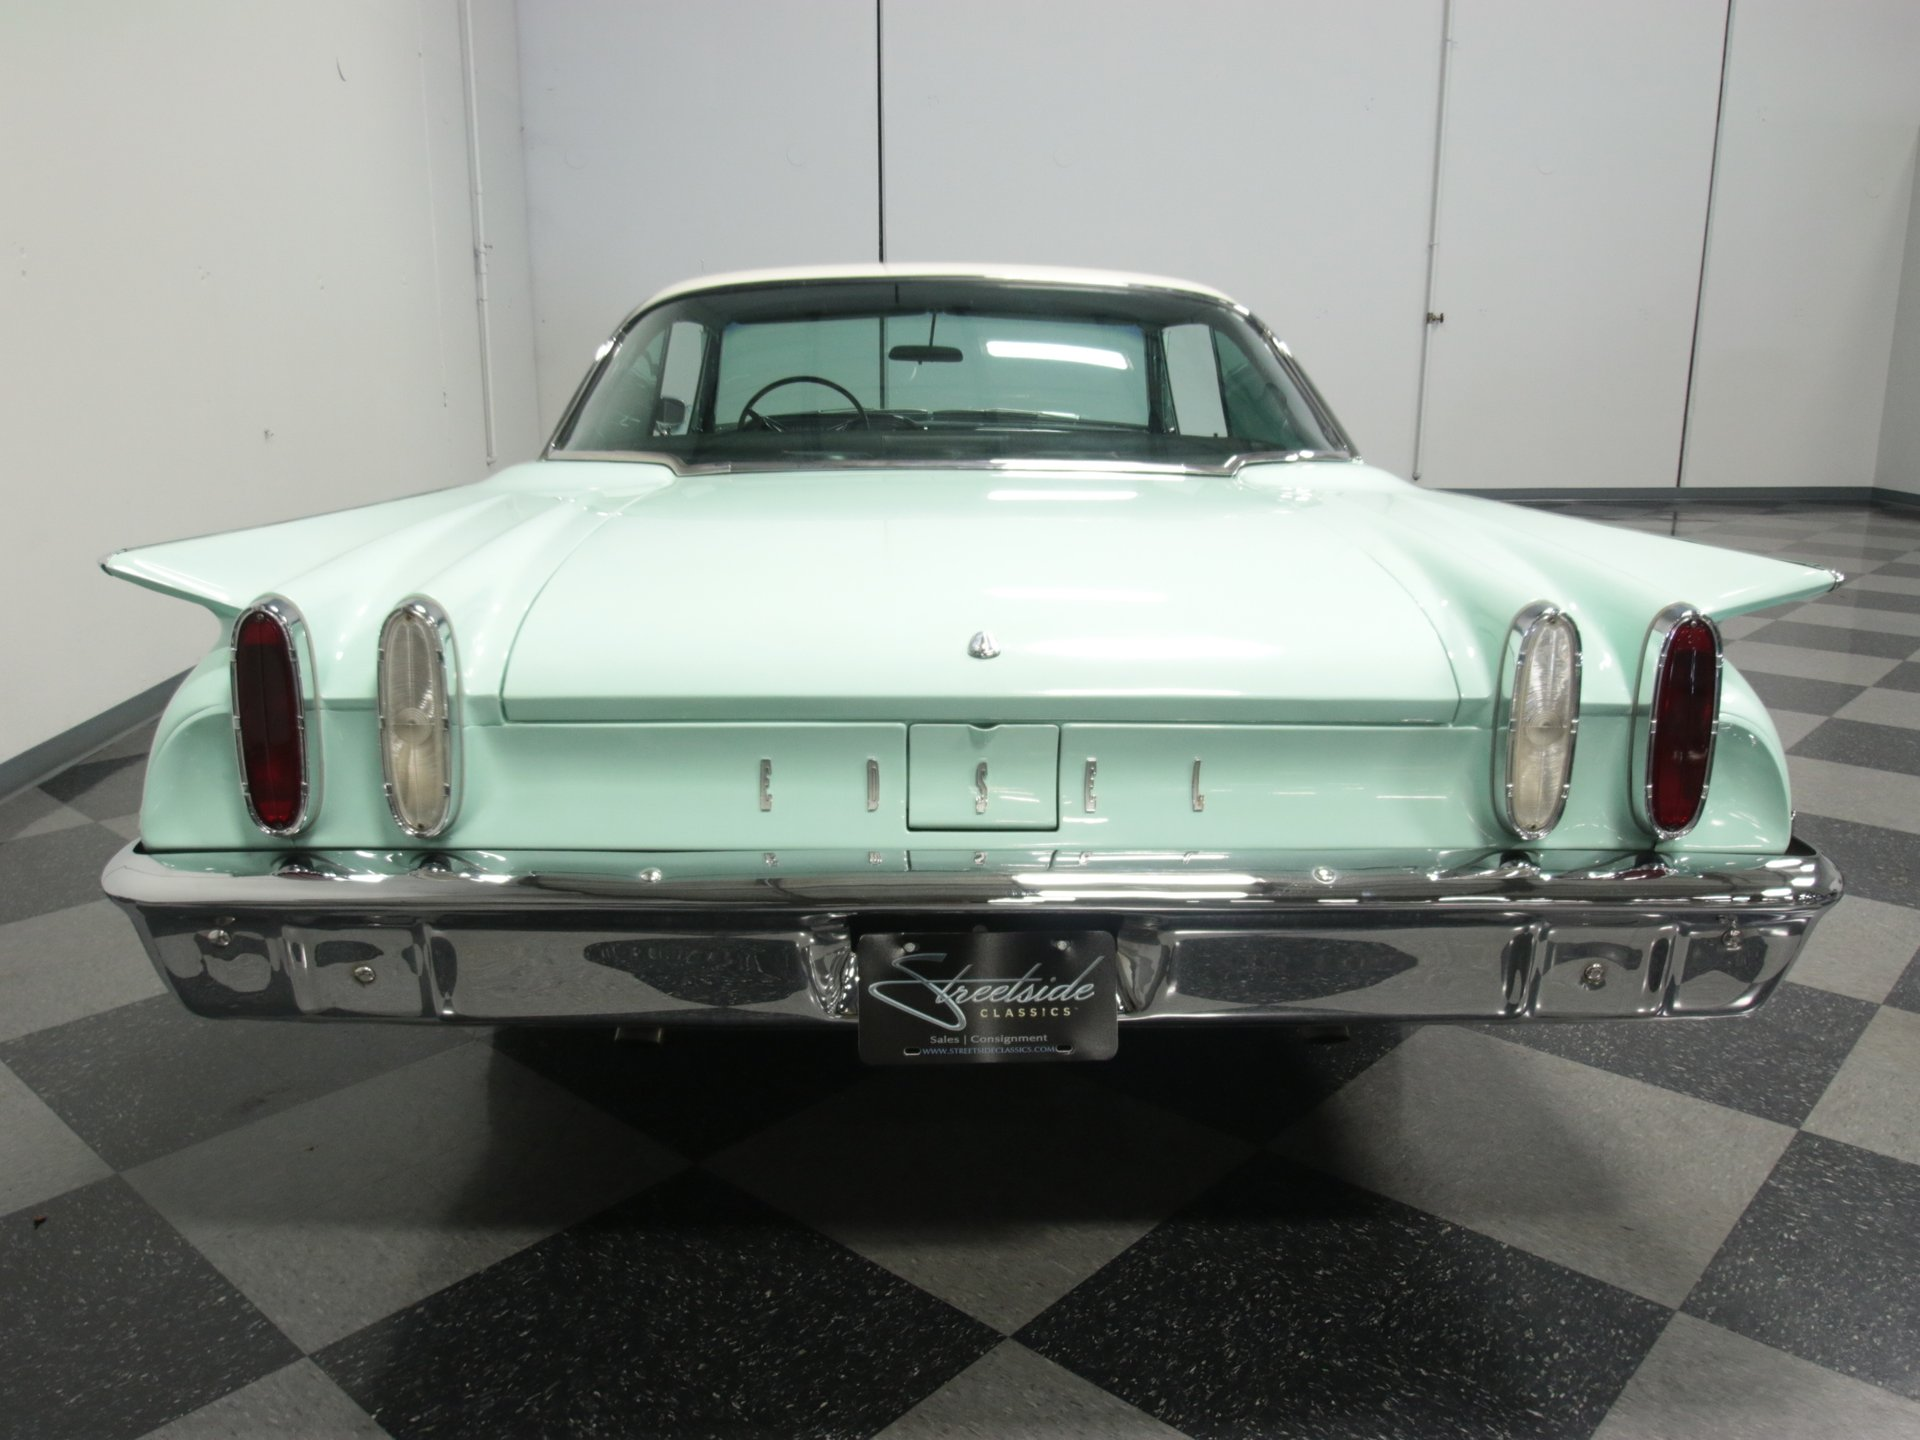 1960 Edsel Ranger Streetside Classics The Nations Trusted Plymouth Fury Station Wagon View 360